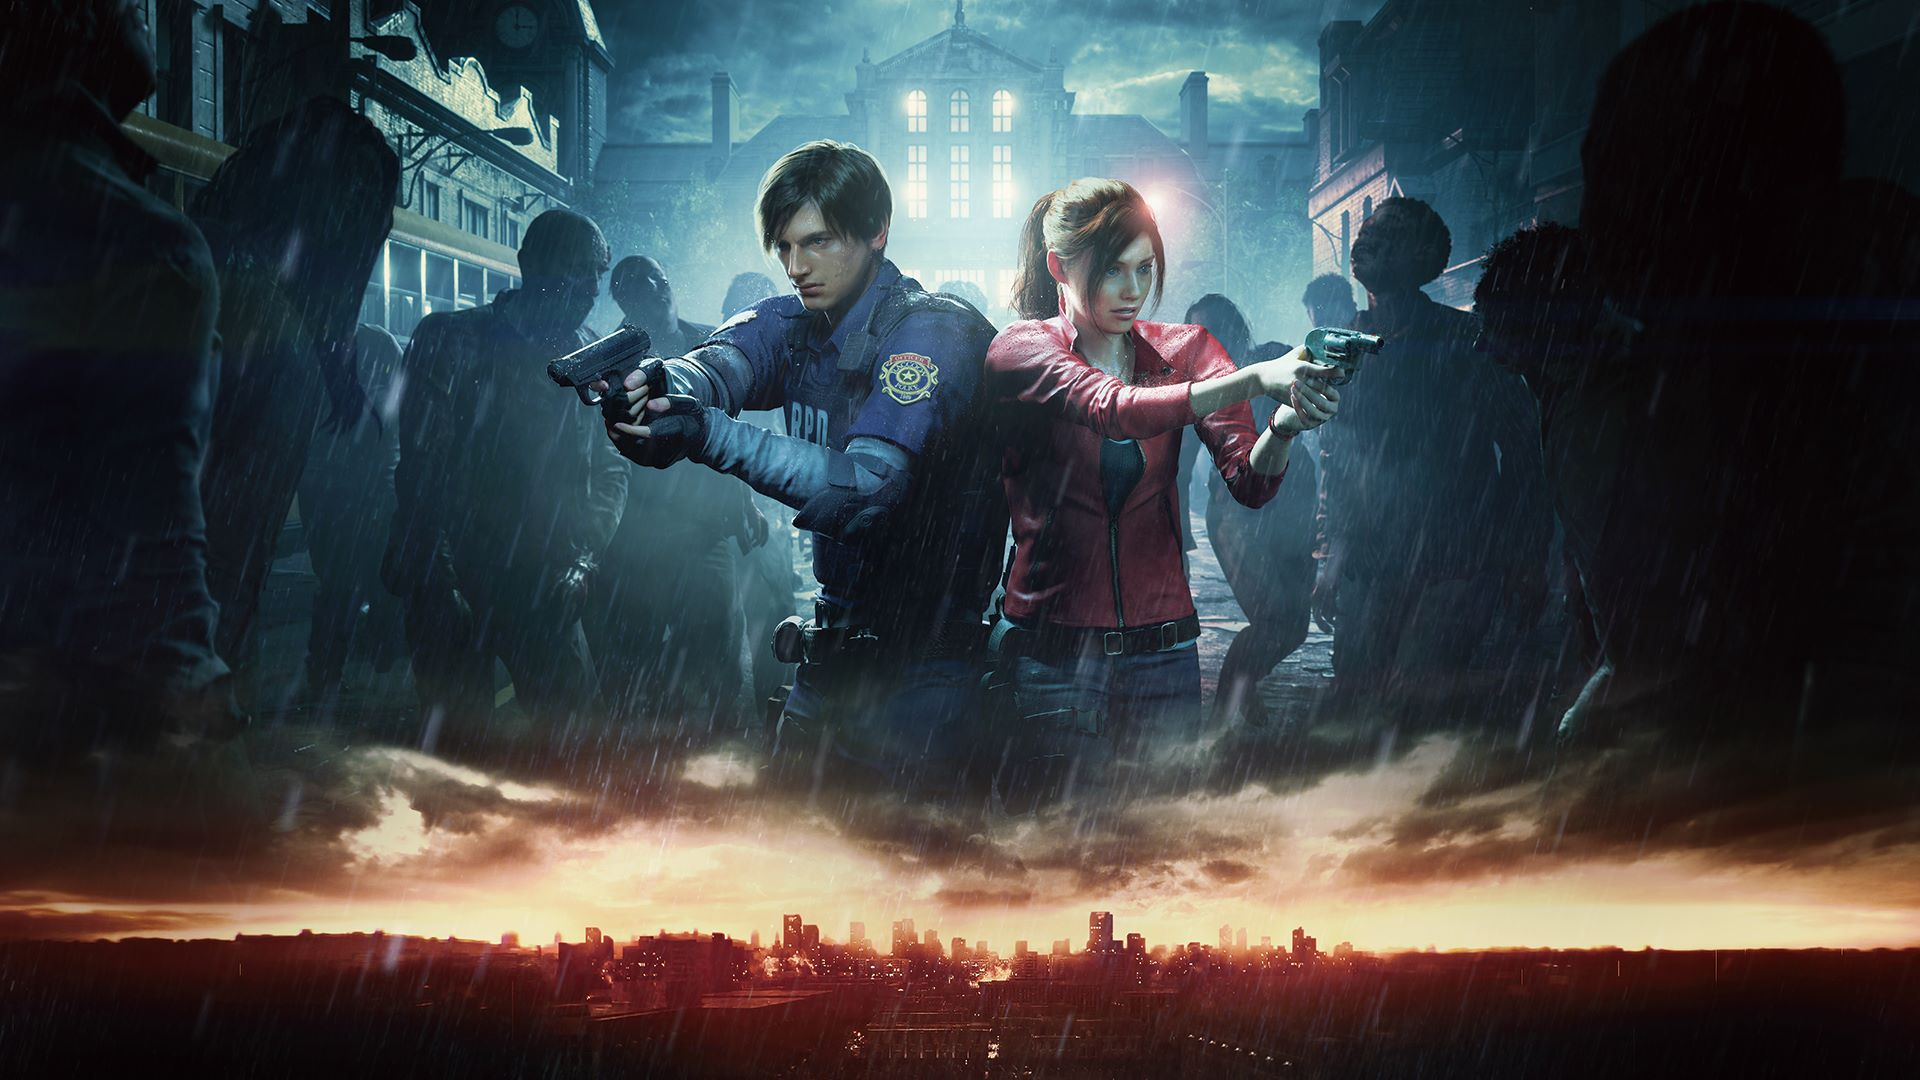 Resident Evil plot has gotten more than just a little convoluted.